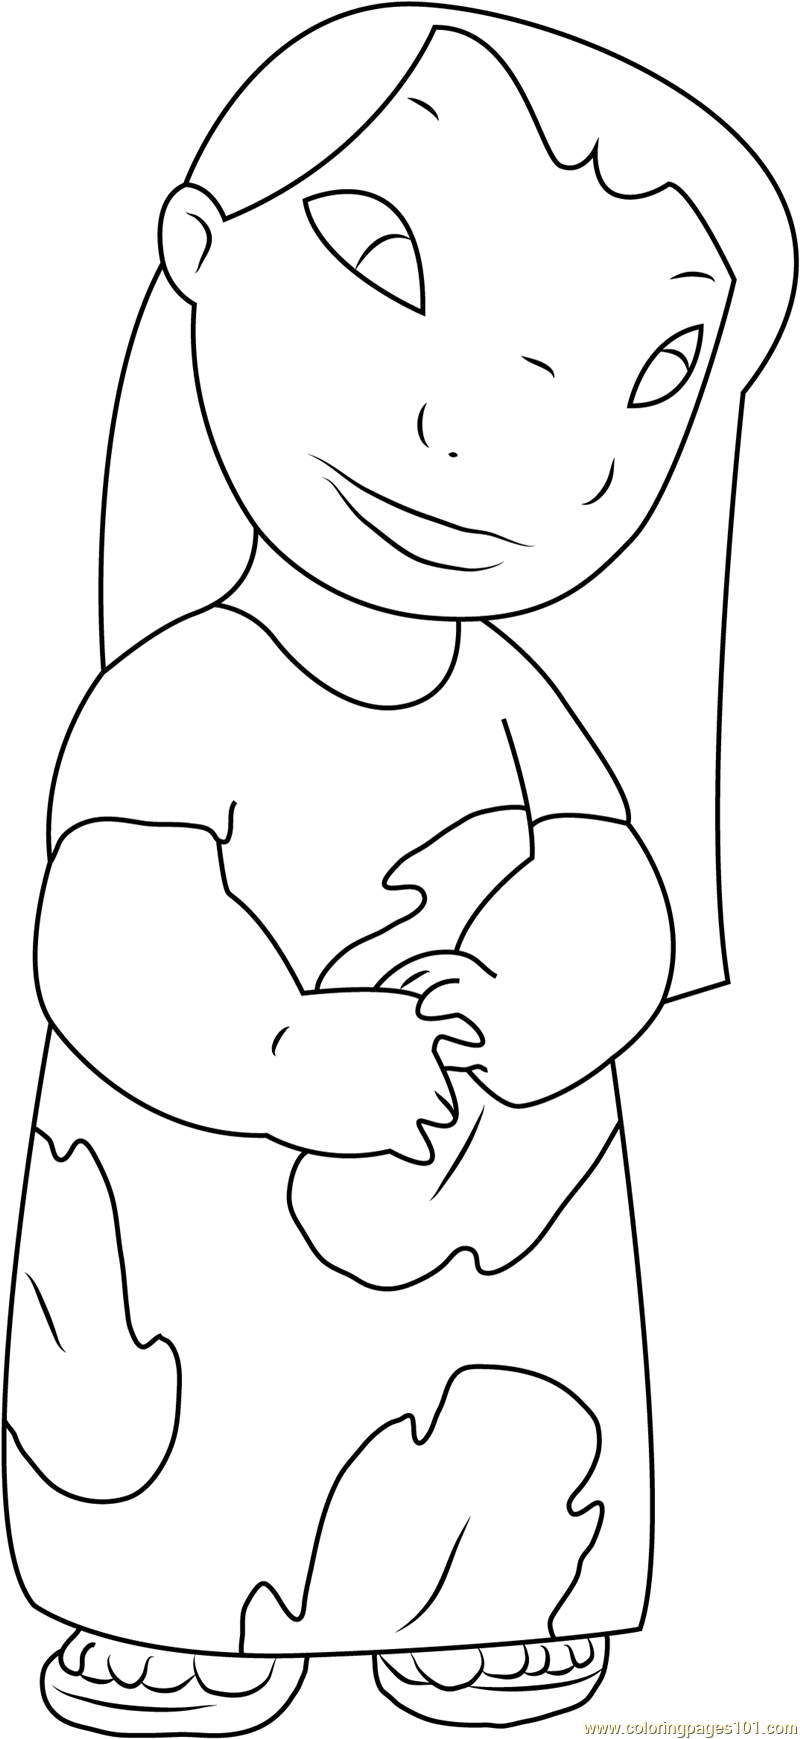 Lilo Pelekai Coloring Page - Free Lilo & Stitch Coloring Pages ... | 1739x800